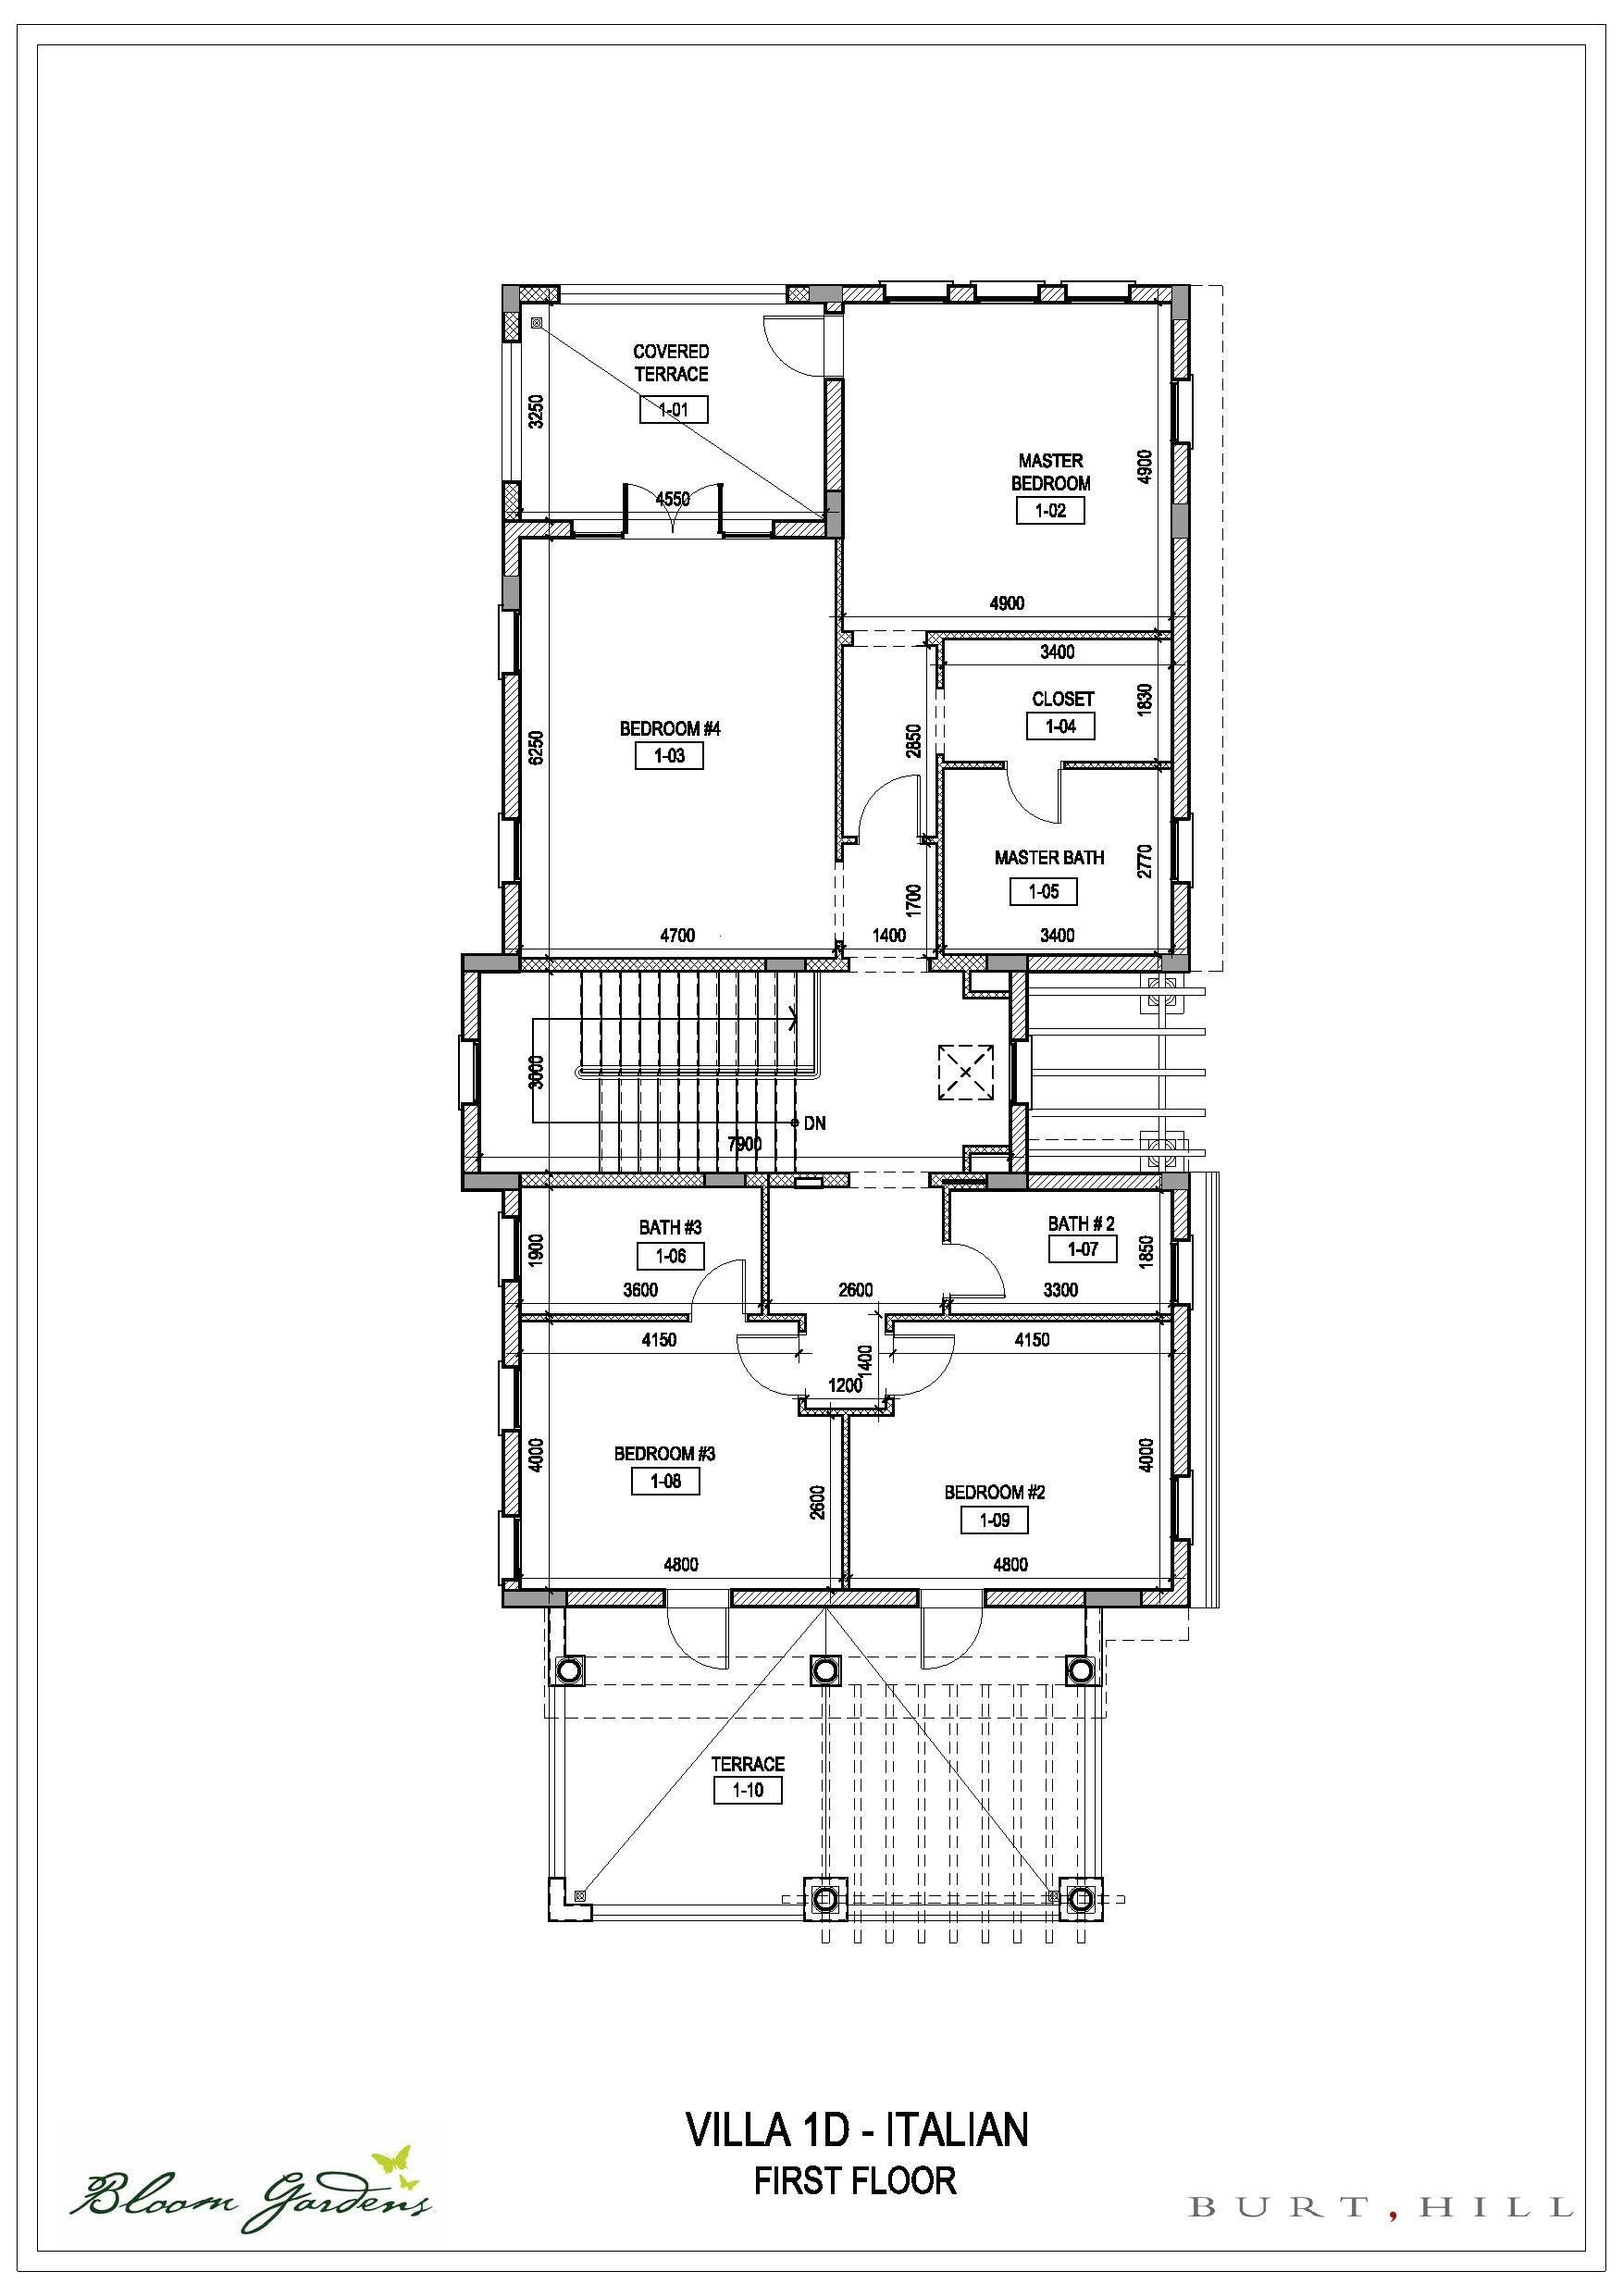 Bloom gardens villas floor plans bloom gardens abu dhabi for Italian villa floor plans